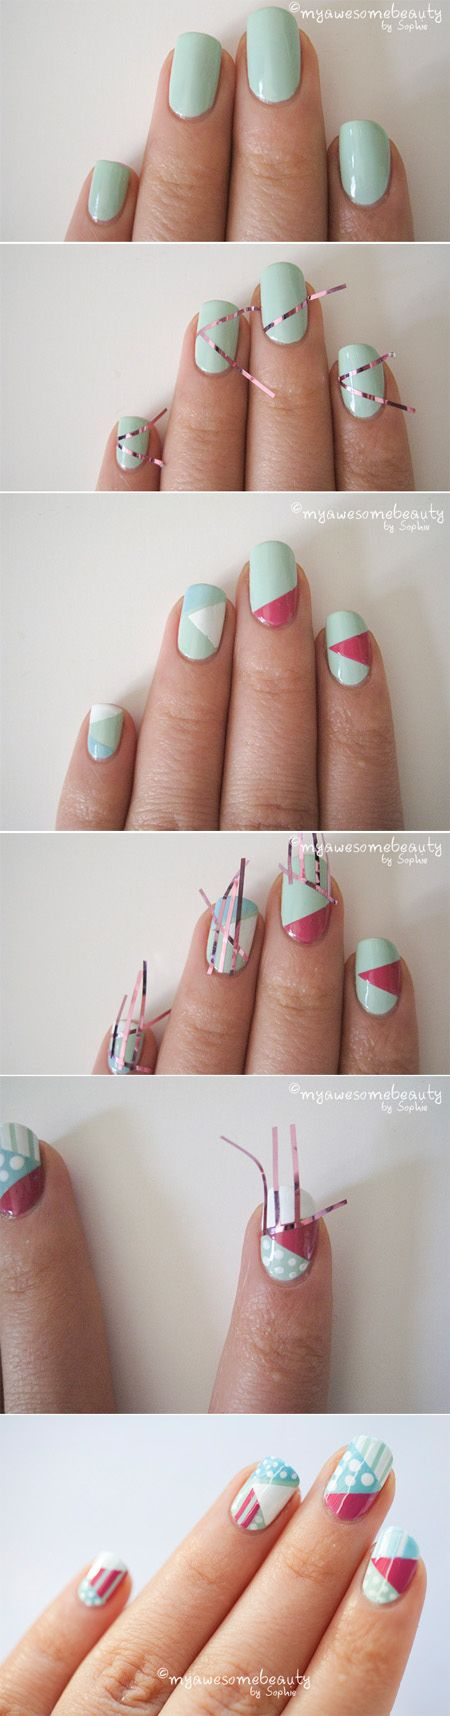 Graphic nail art by @myawesomebeauty is just too cool! Get the look with all your favorite nail polish from Duane Reade.